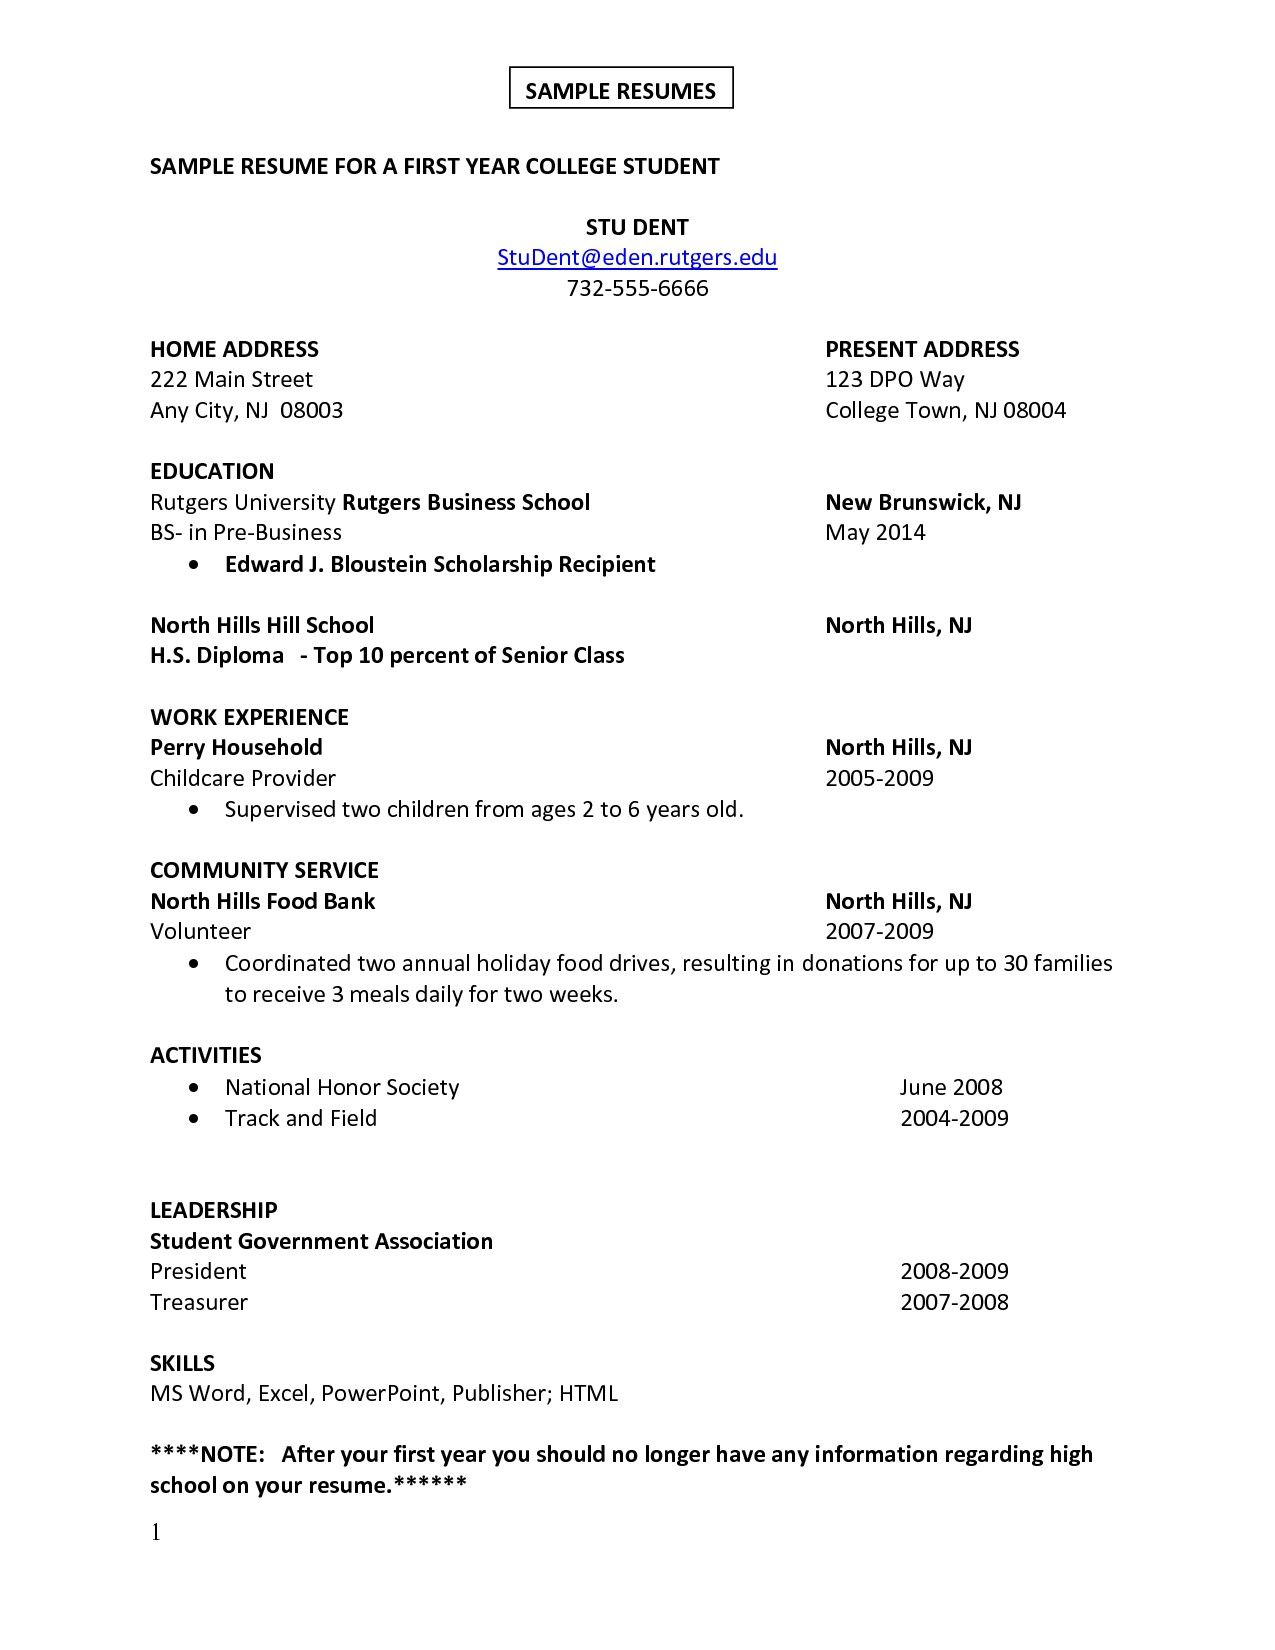 Sample Resume Templates First Job Resume  Google Search  Resume  Pinterest  Sample